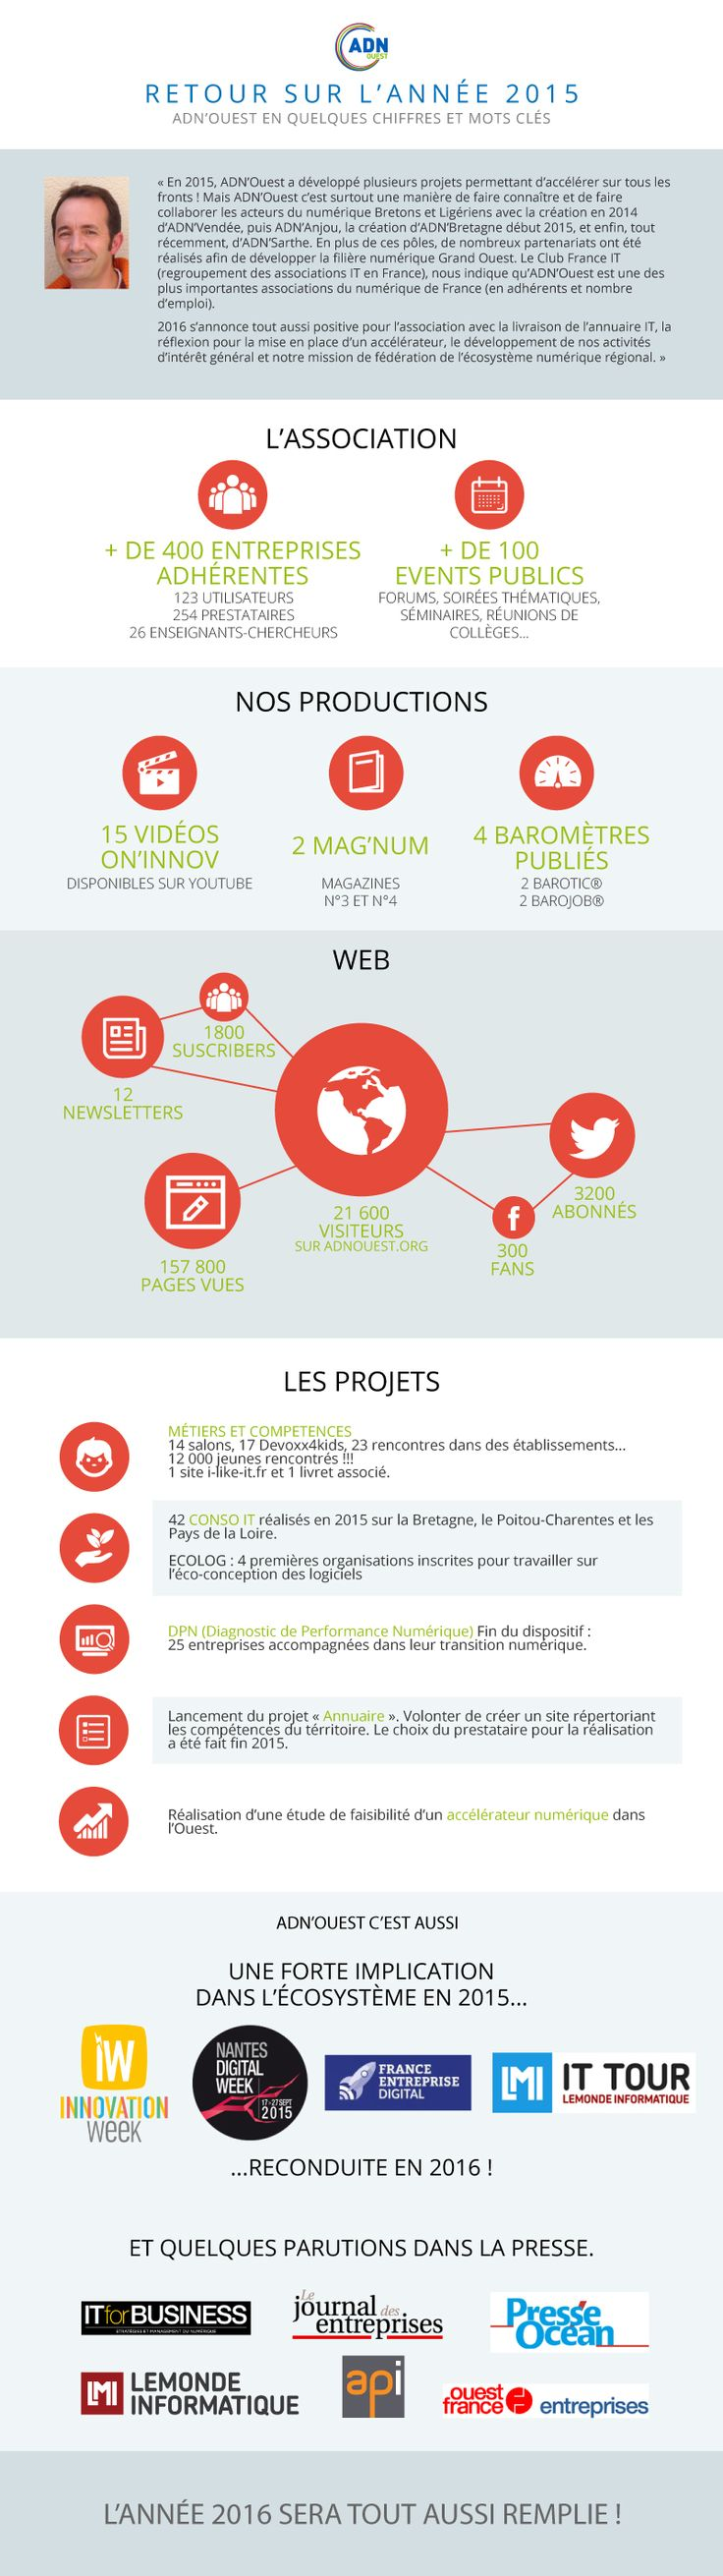 infographie-association-adnouest-2015-6